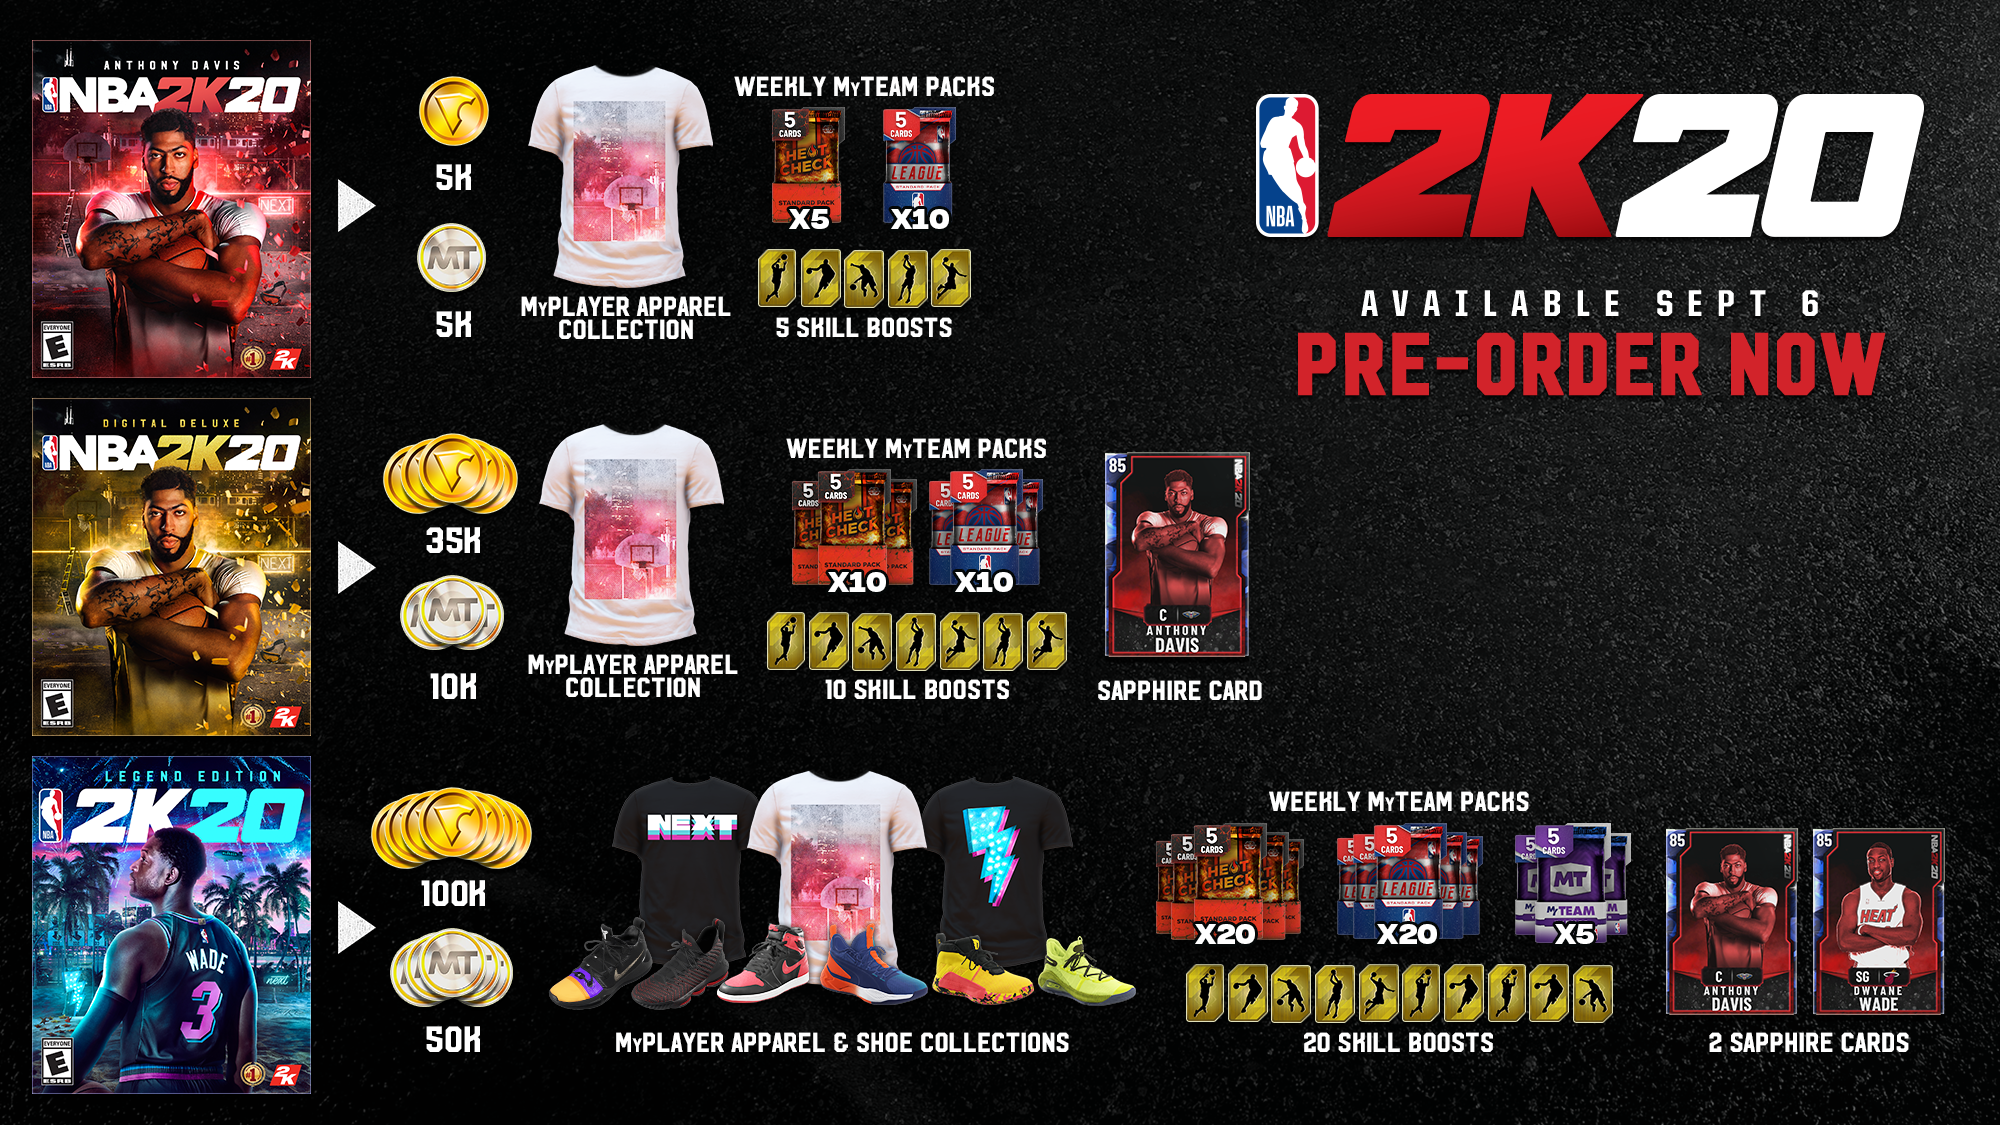 Here's What You Get For Pre-Ordering NBA 2K20 – 2K Support